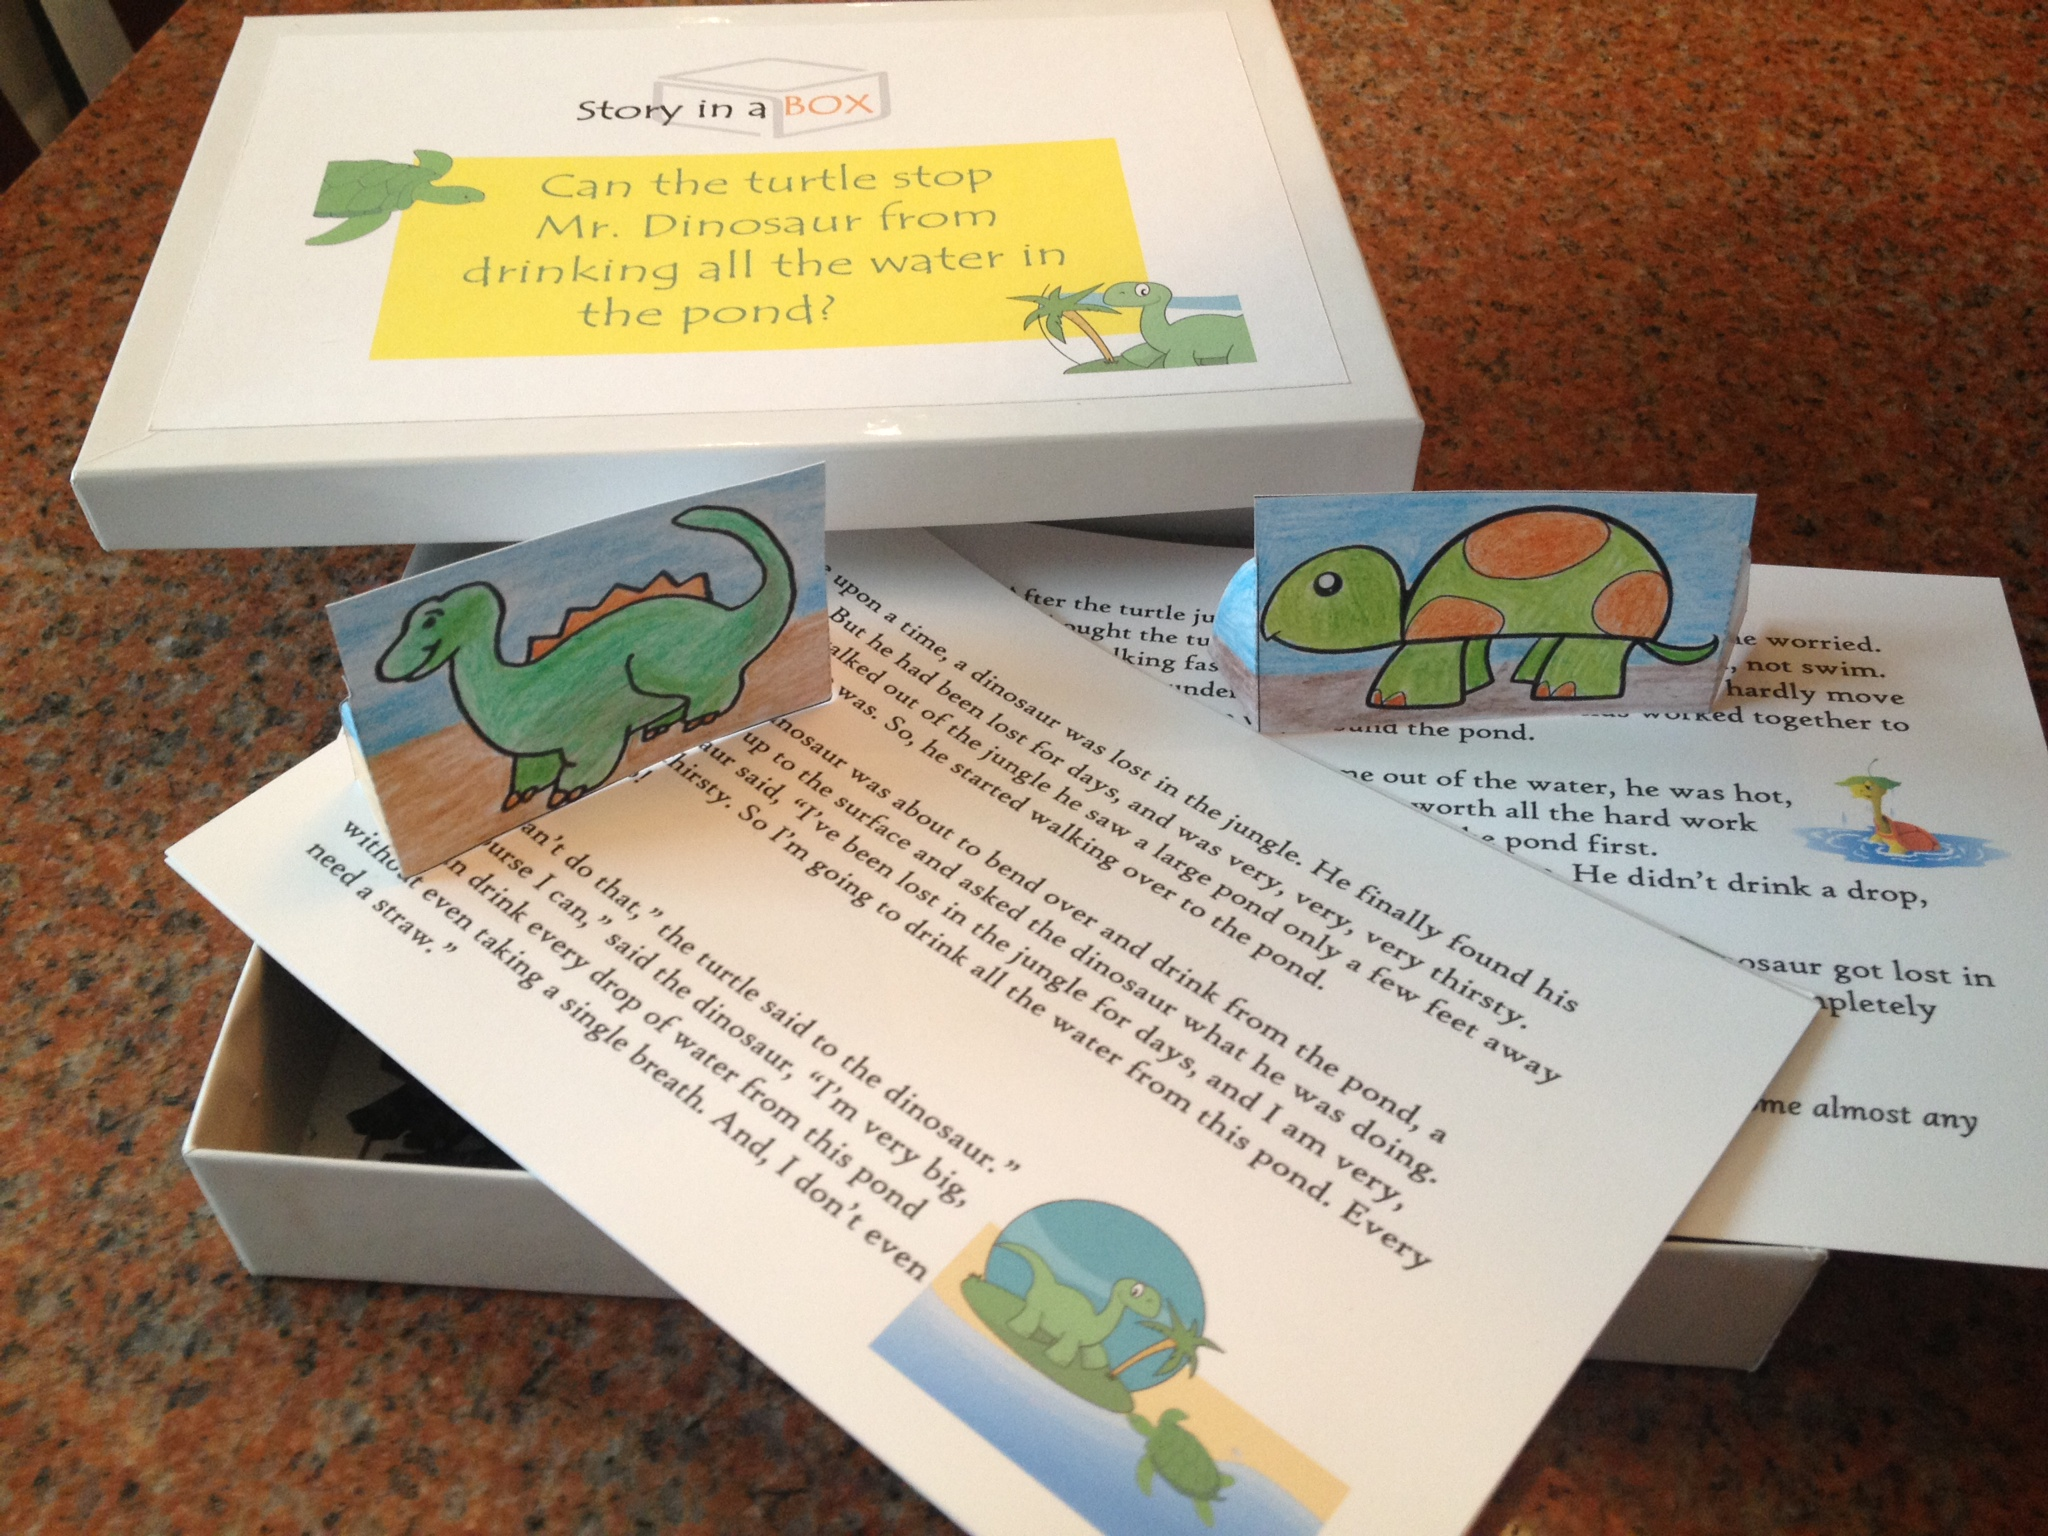 The Dinosaur and Turtle Story in a Box Image